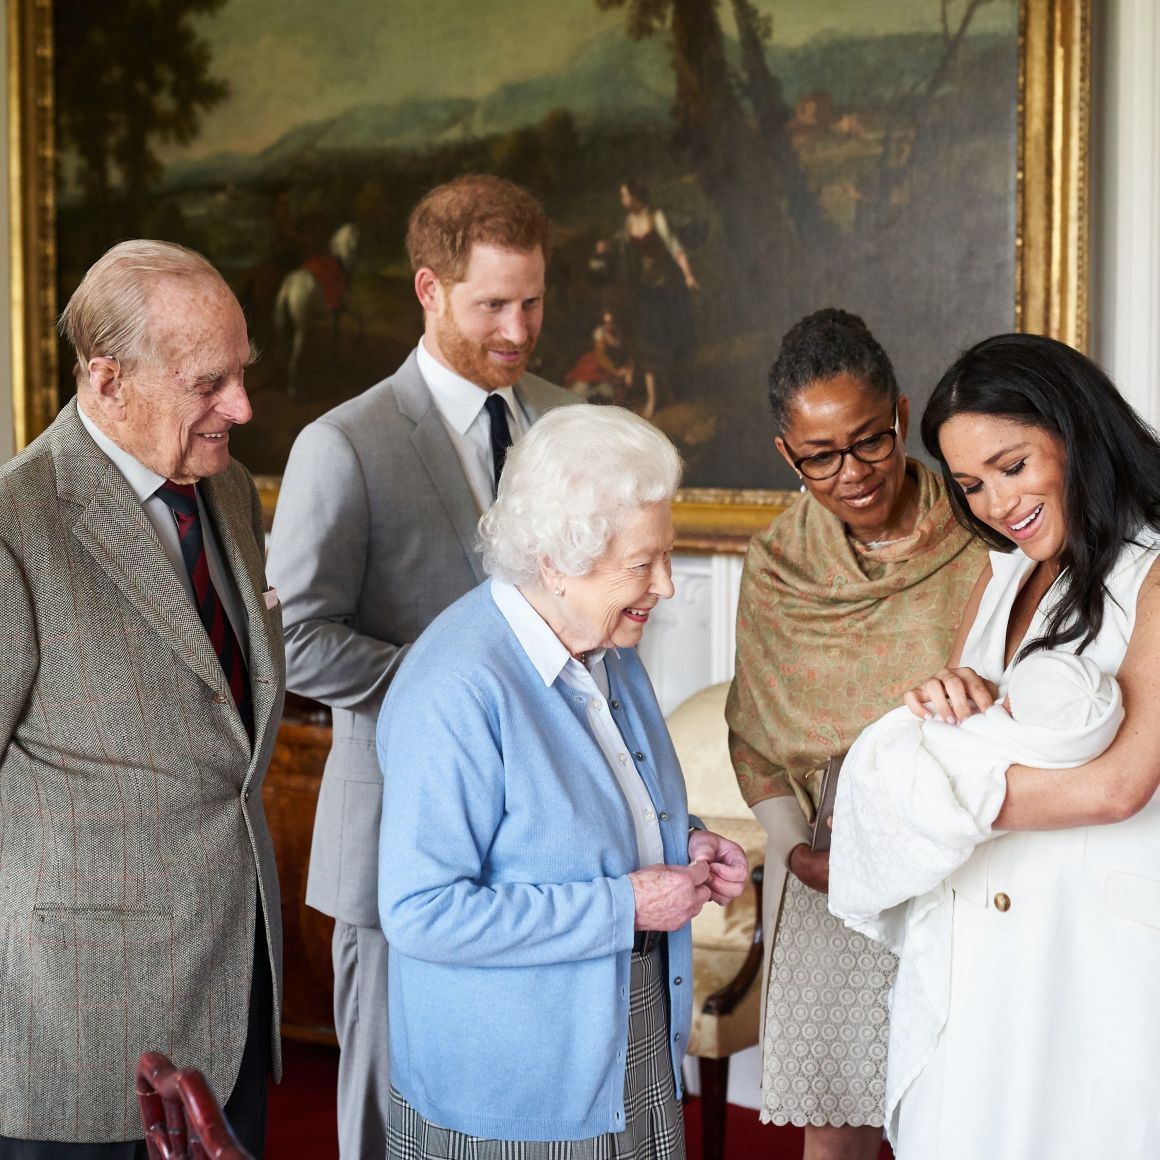 The Queen is said to have called Archie via Zoom for his second birthday